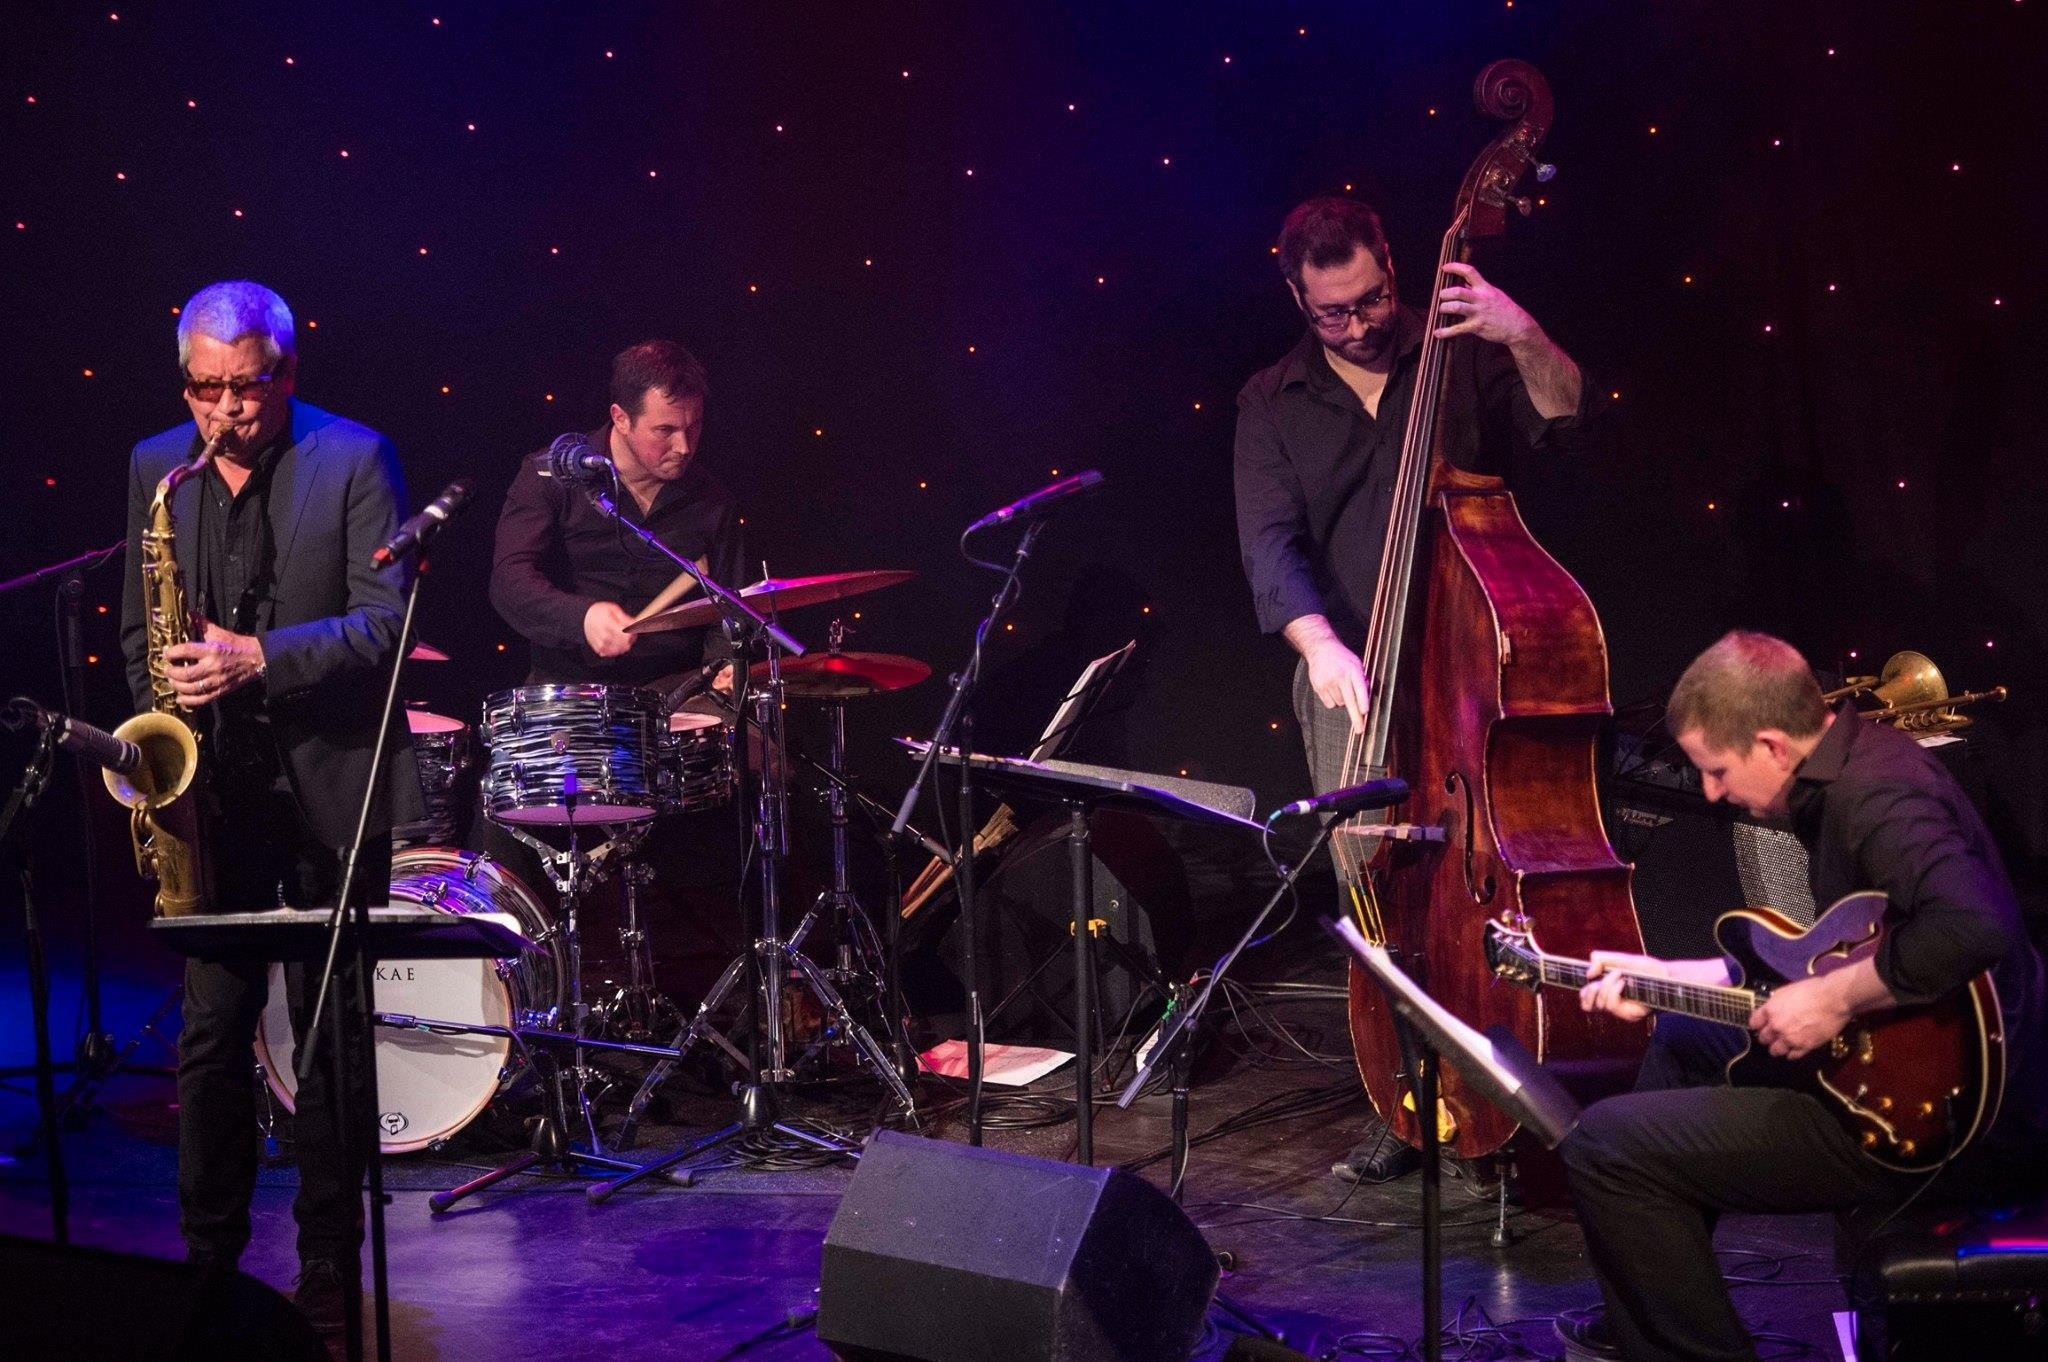 Andy Sheppard's 'Hotel Bristol' - Liverpool International Jazz Festival, 2015